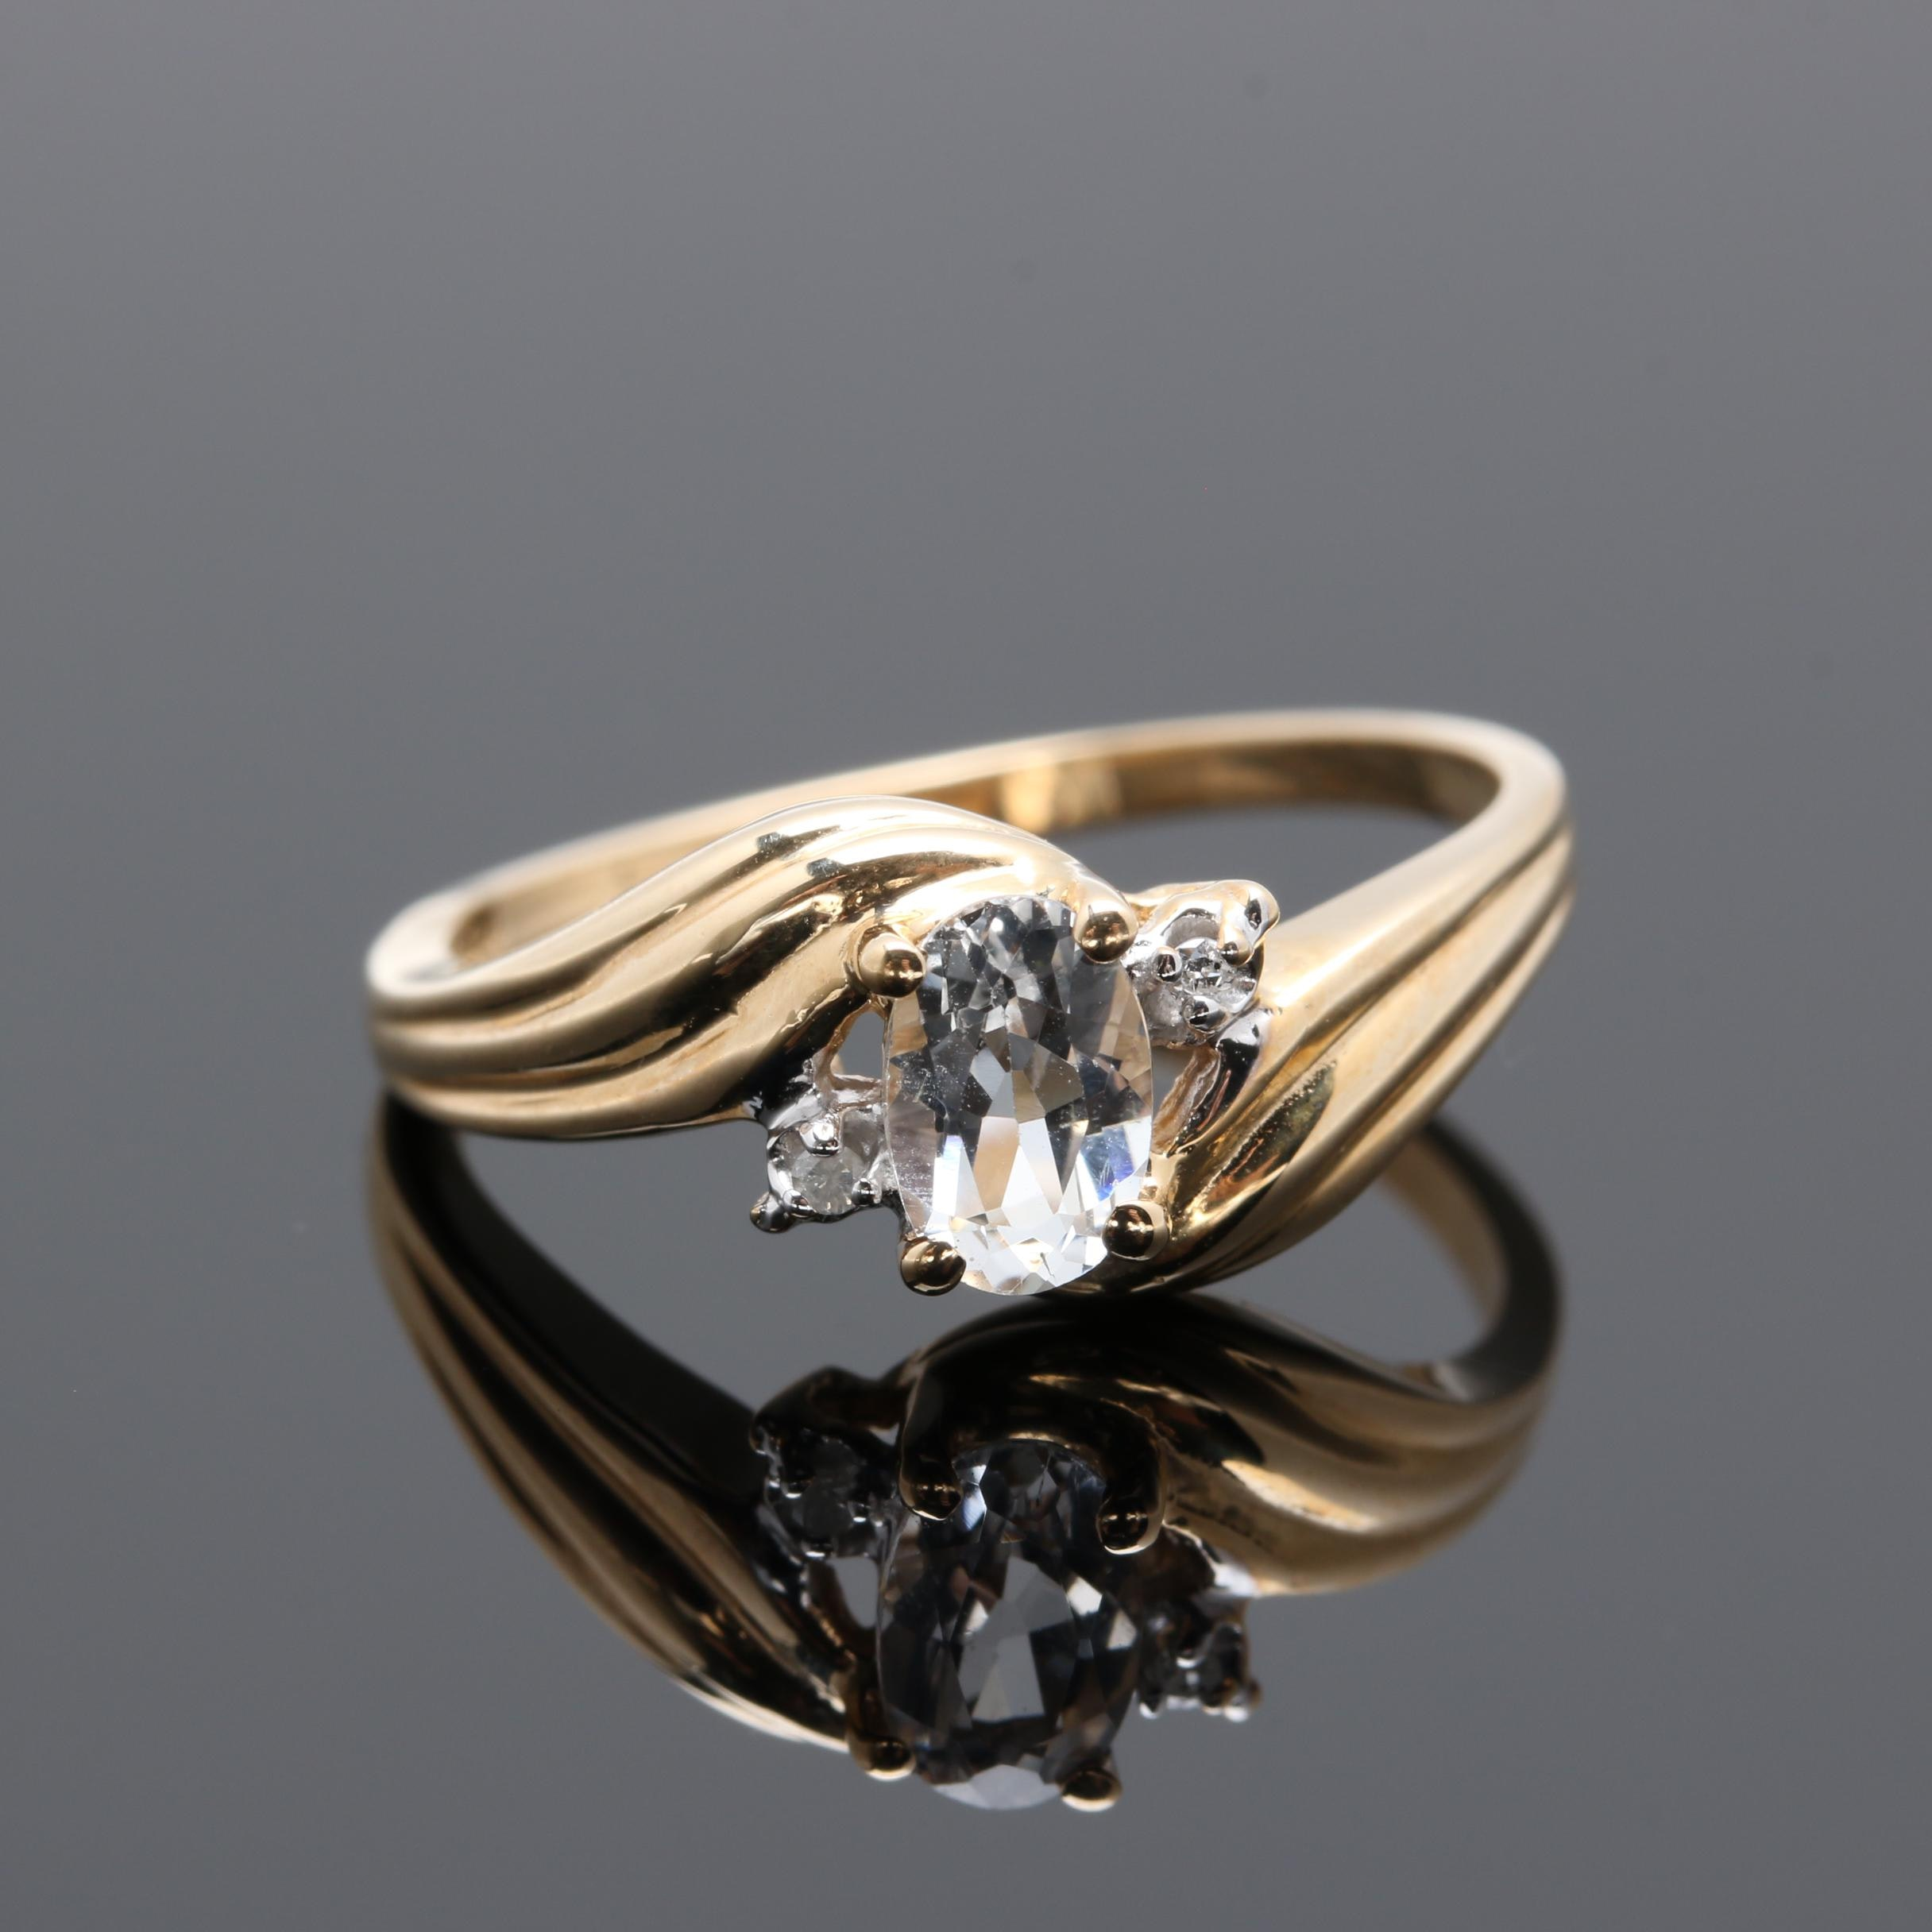 10K Yellow Gold White Topaz and Diamond Ring